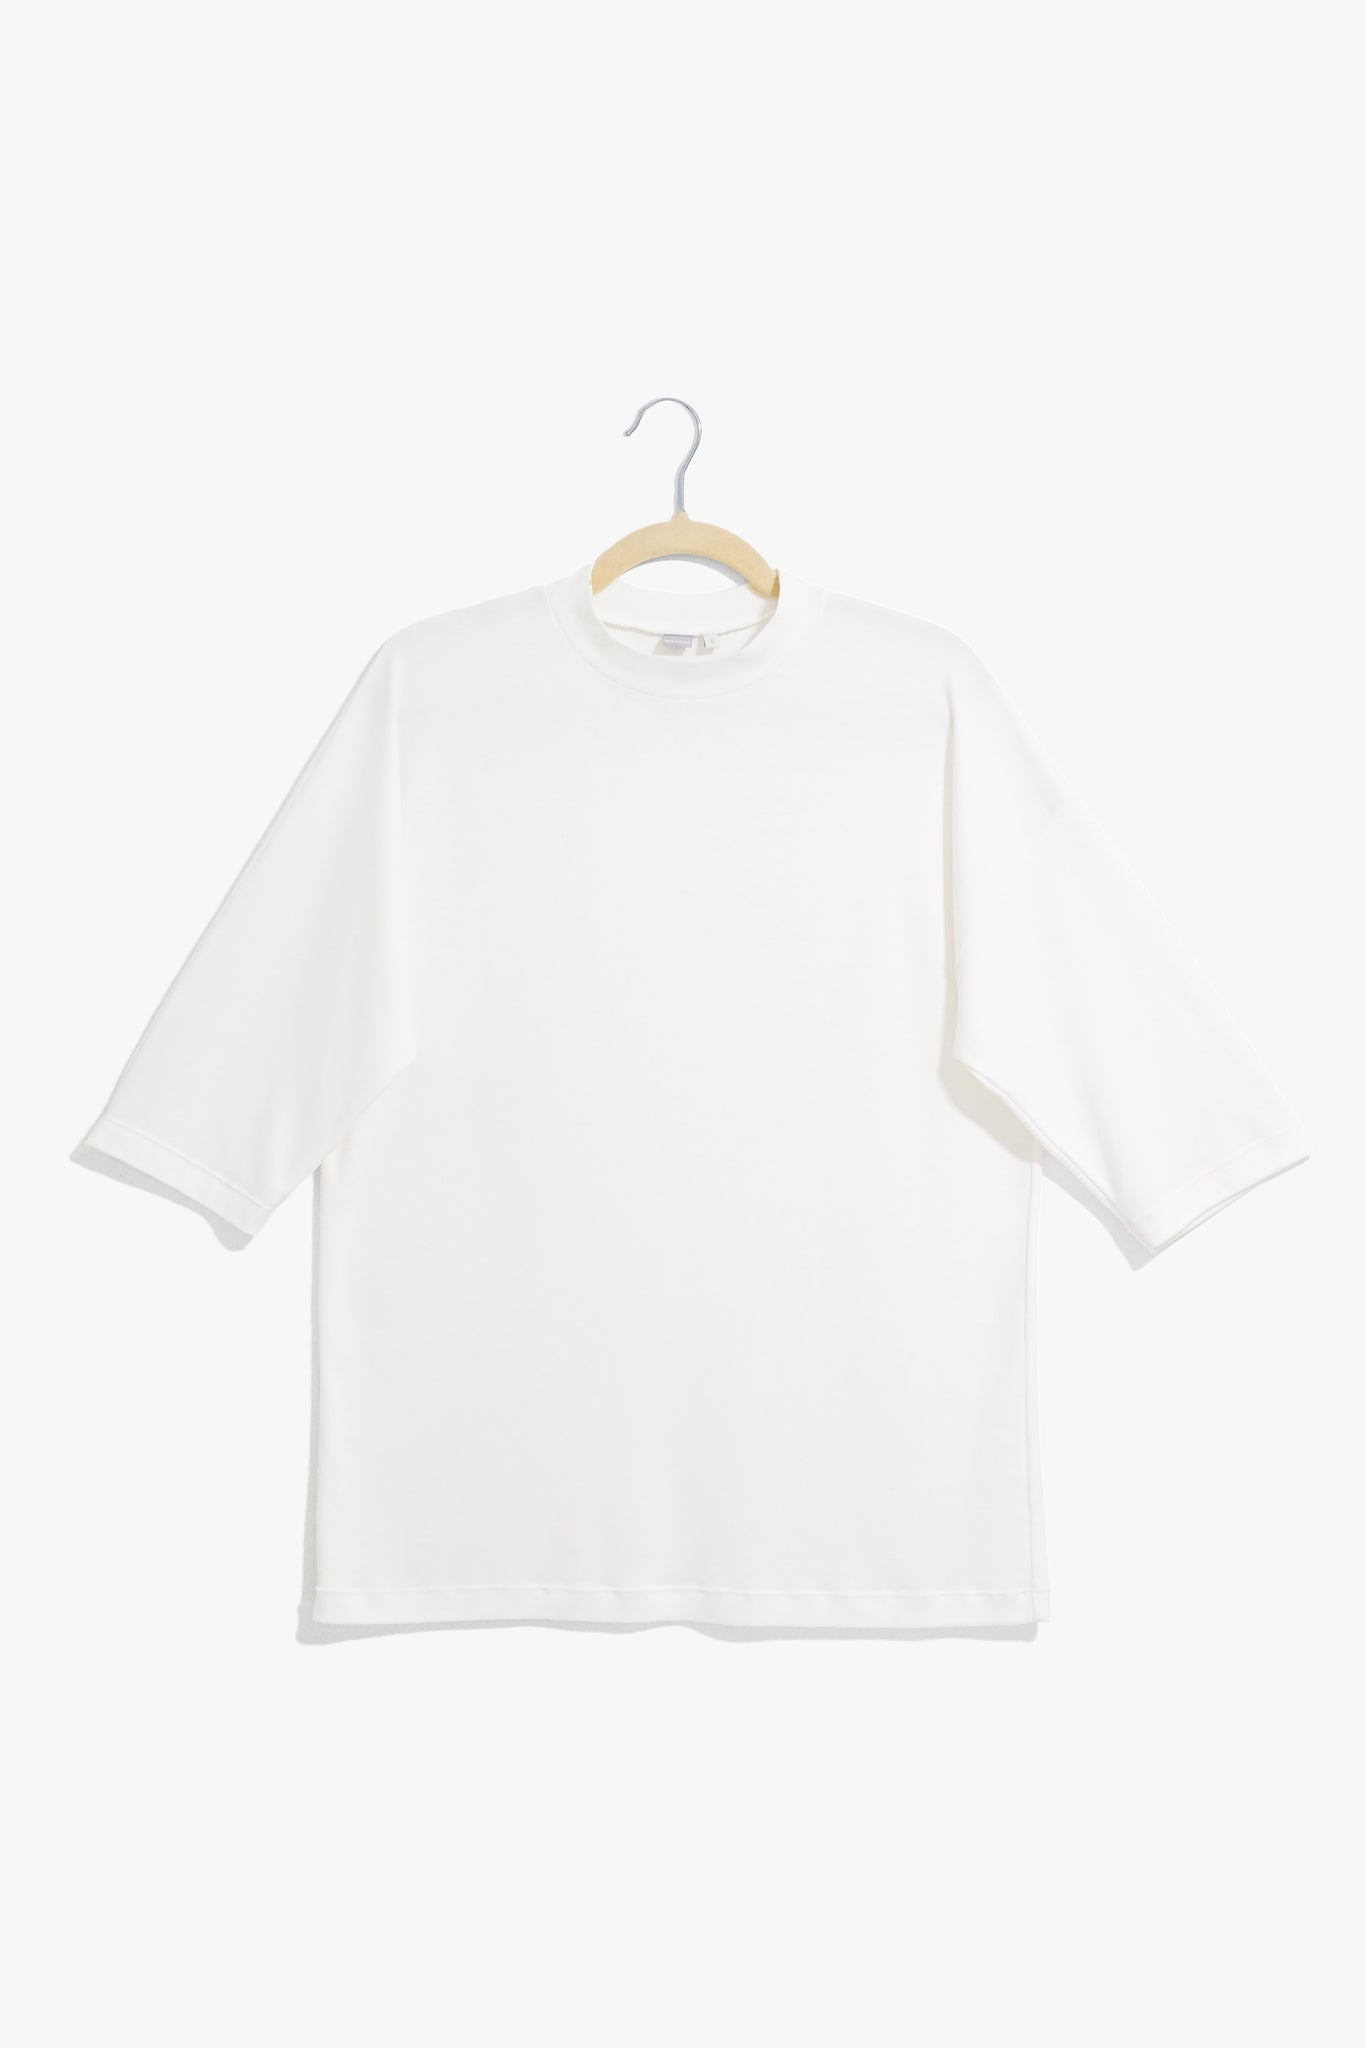 Natural White Elbow Tee